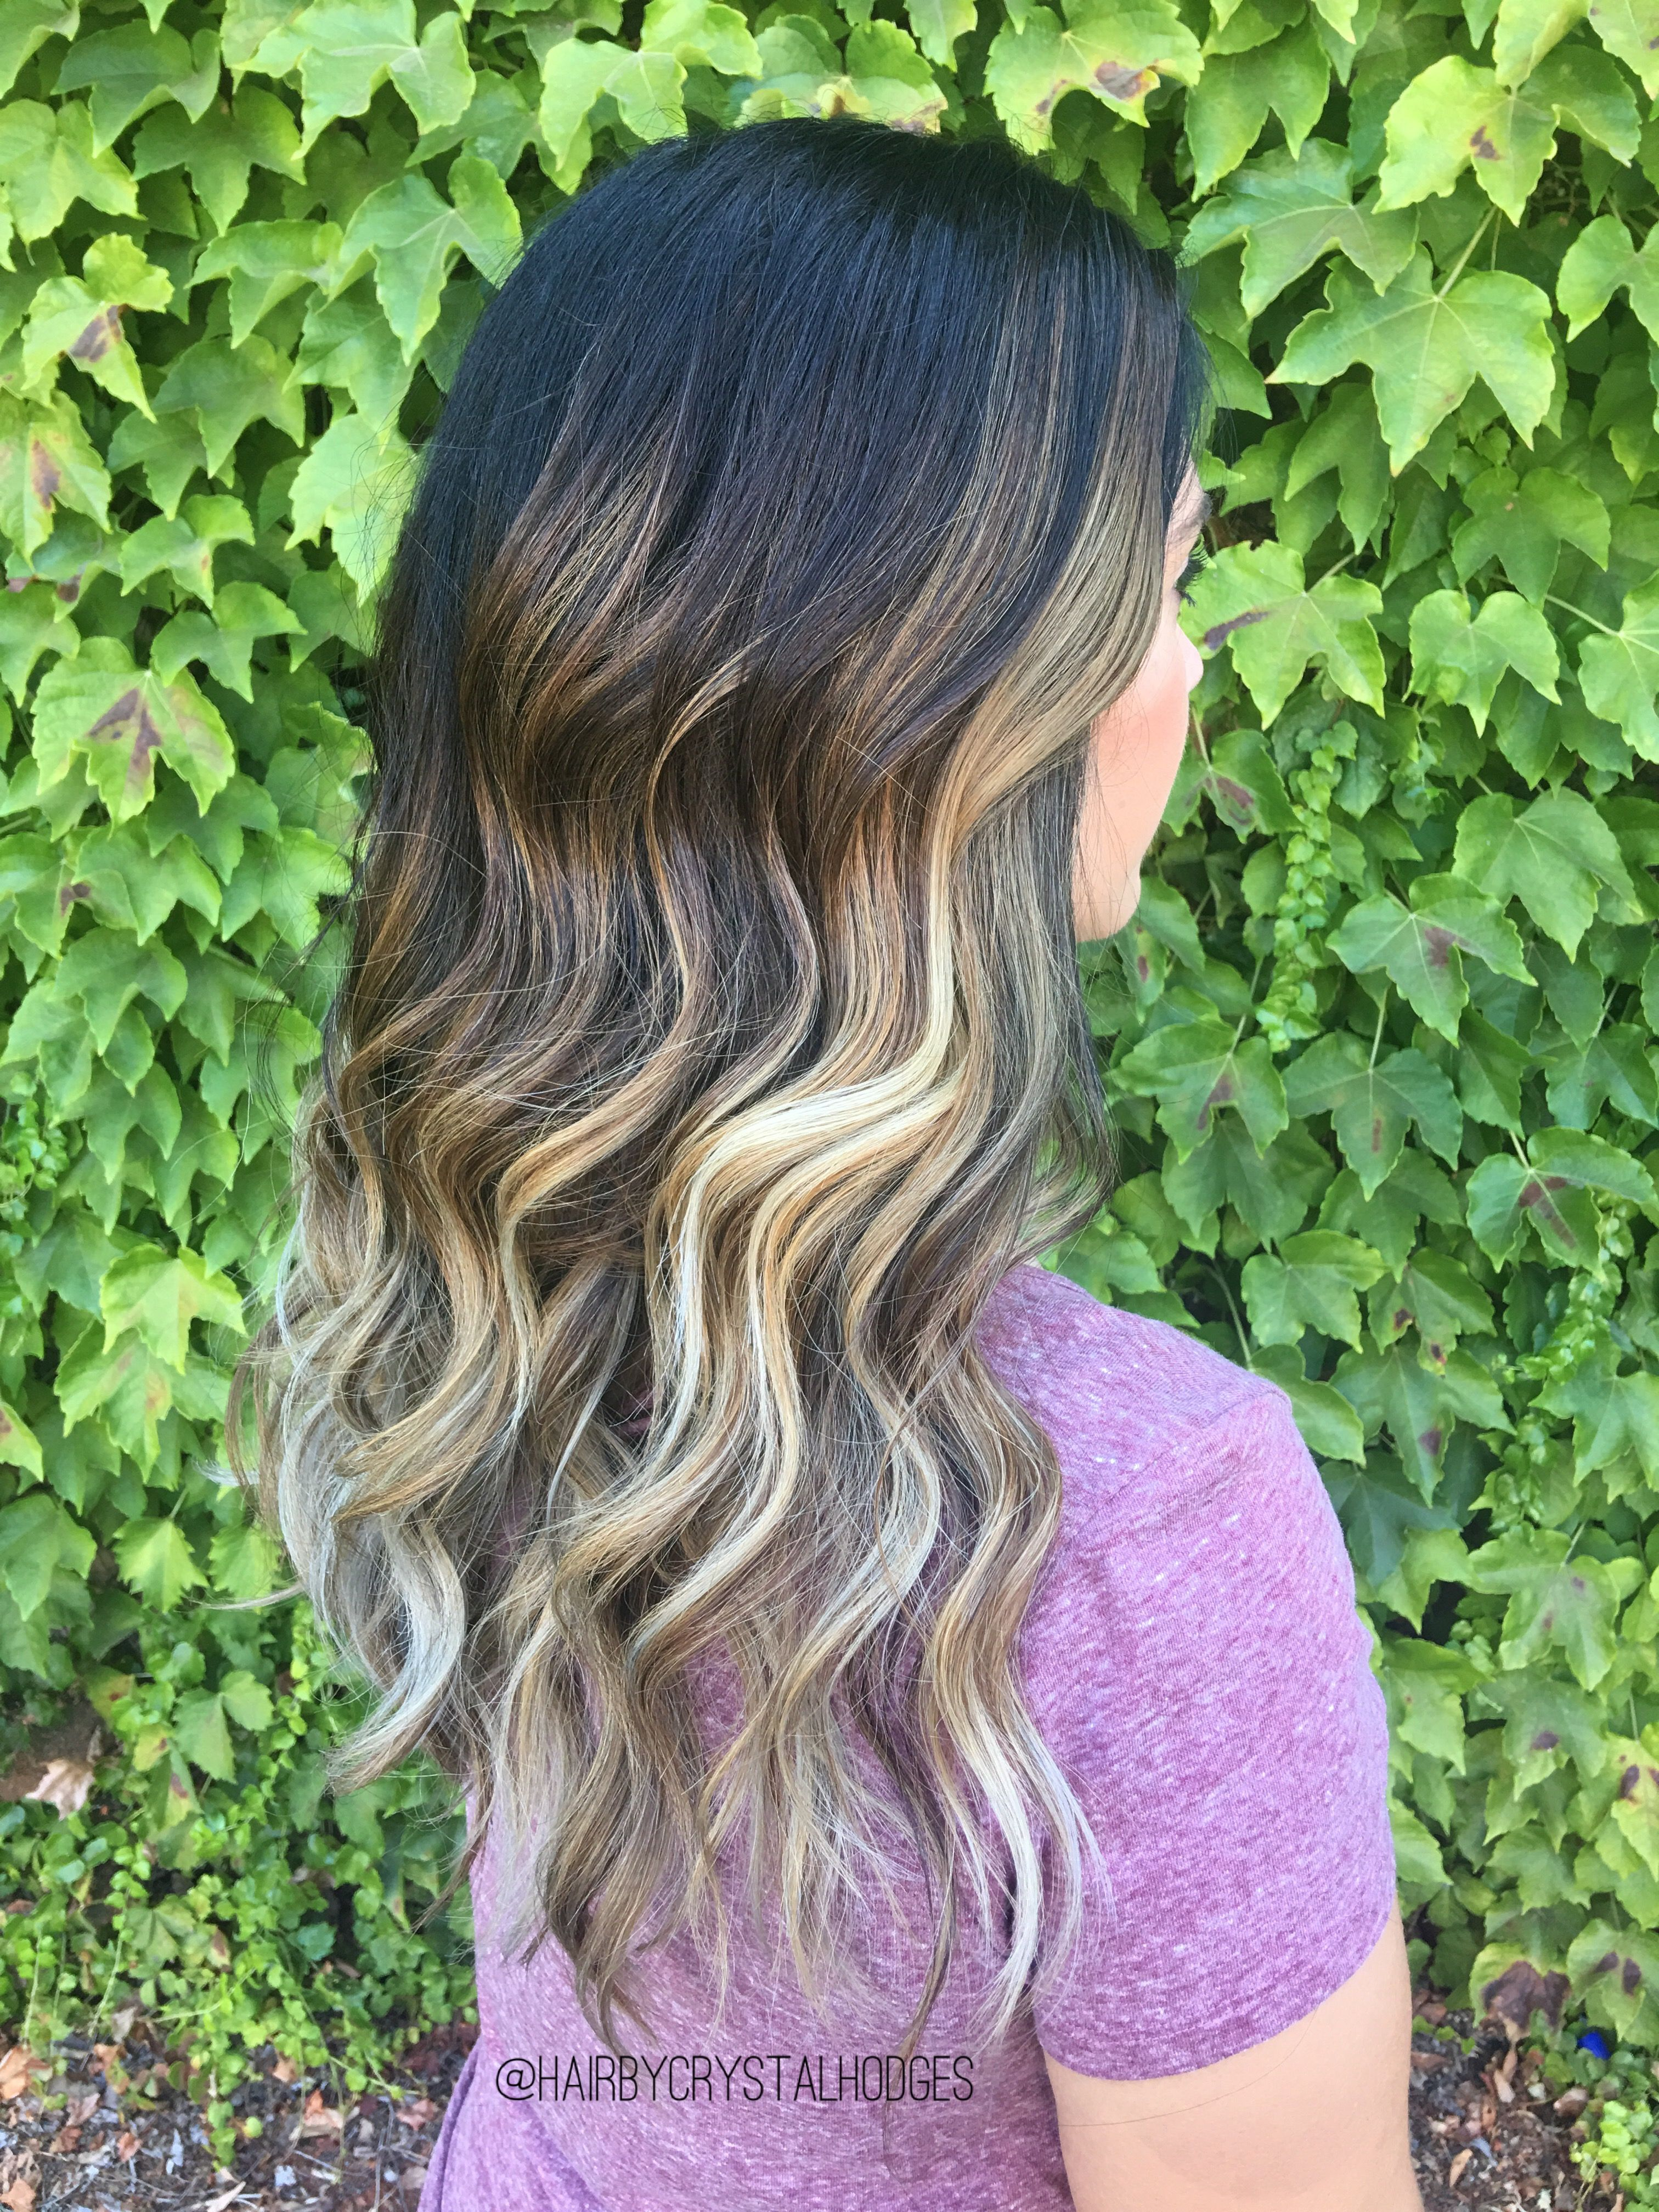 Balayage hair by crystal Hodges Tangled salon & boutique Oroville Ca